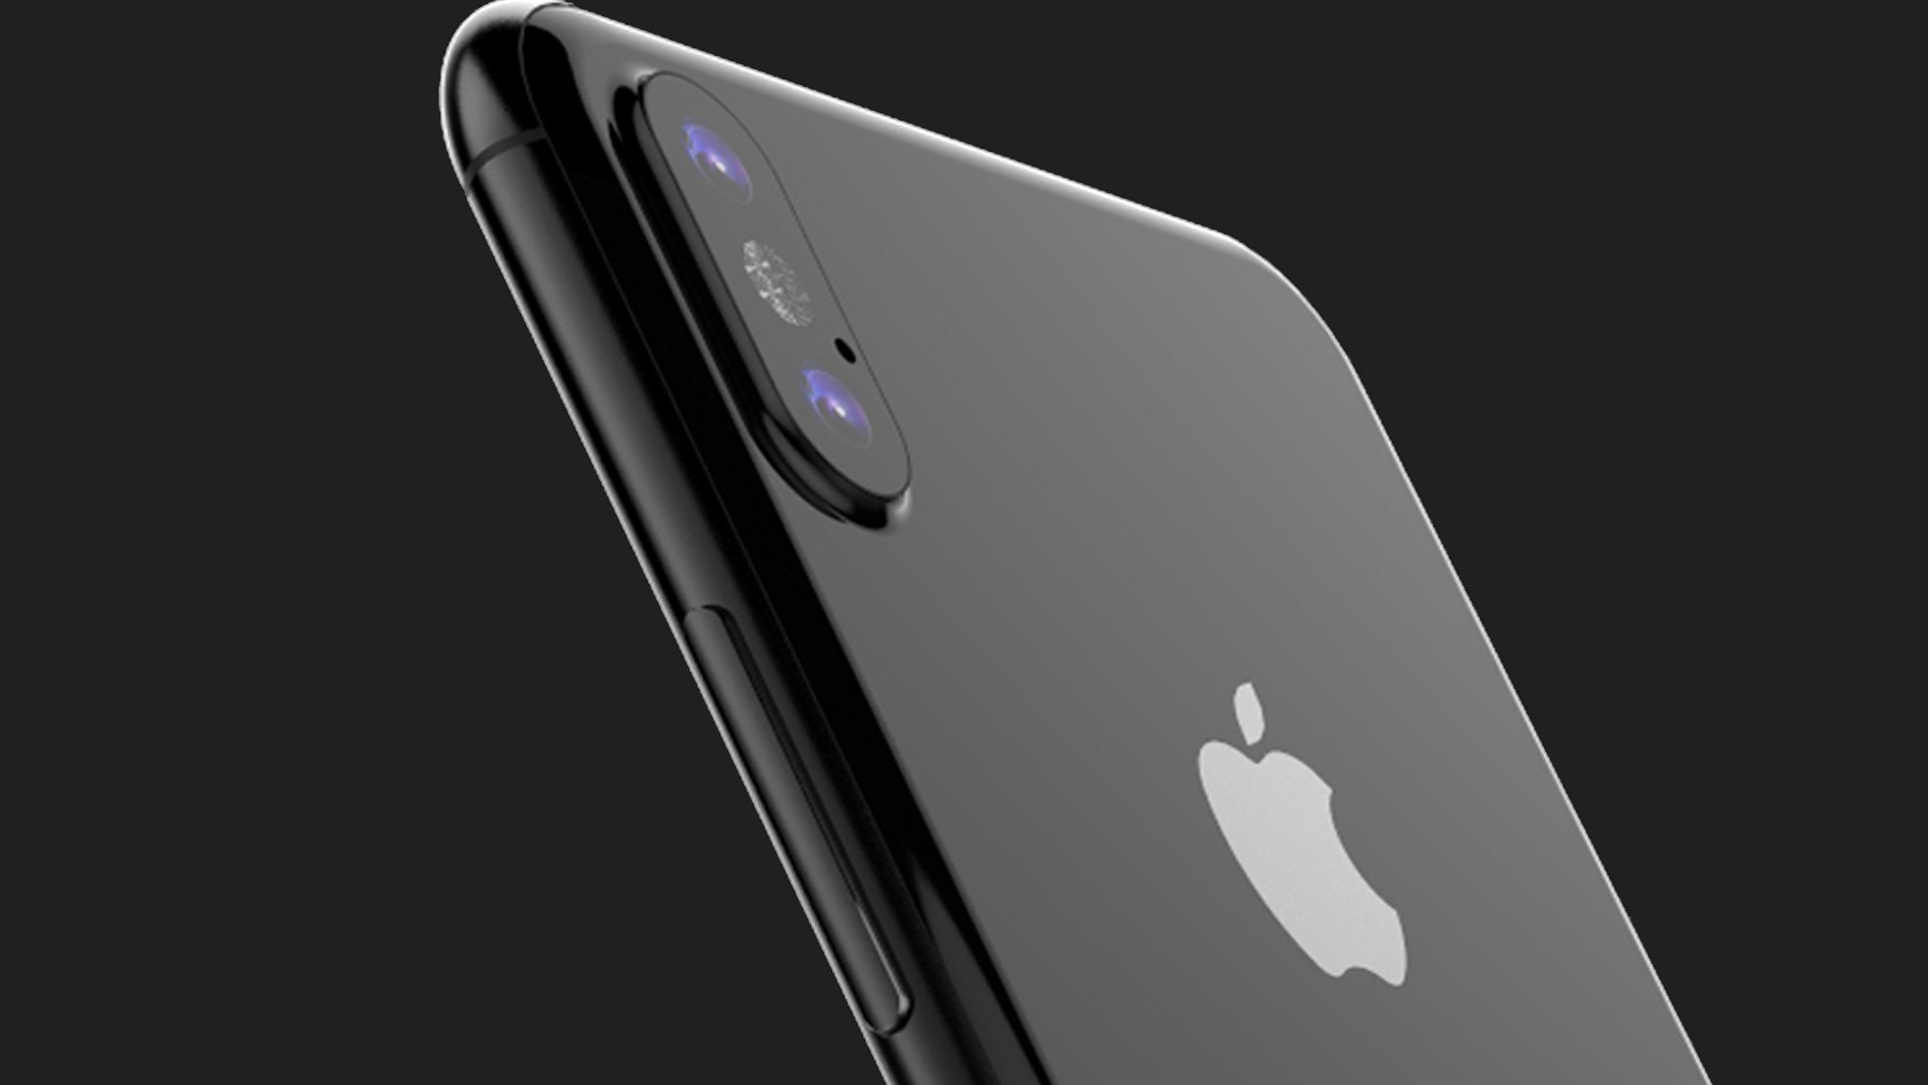 iphone 8 render 16x9